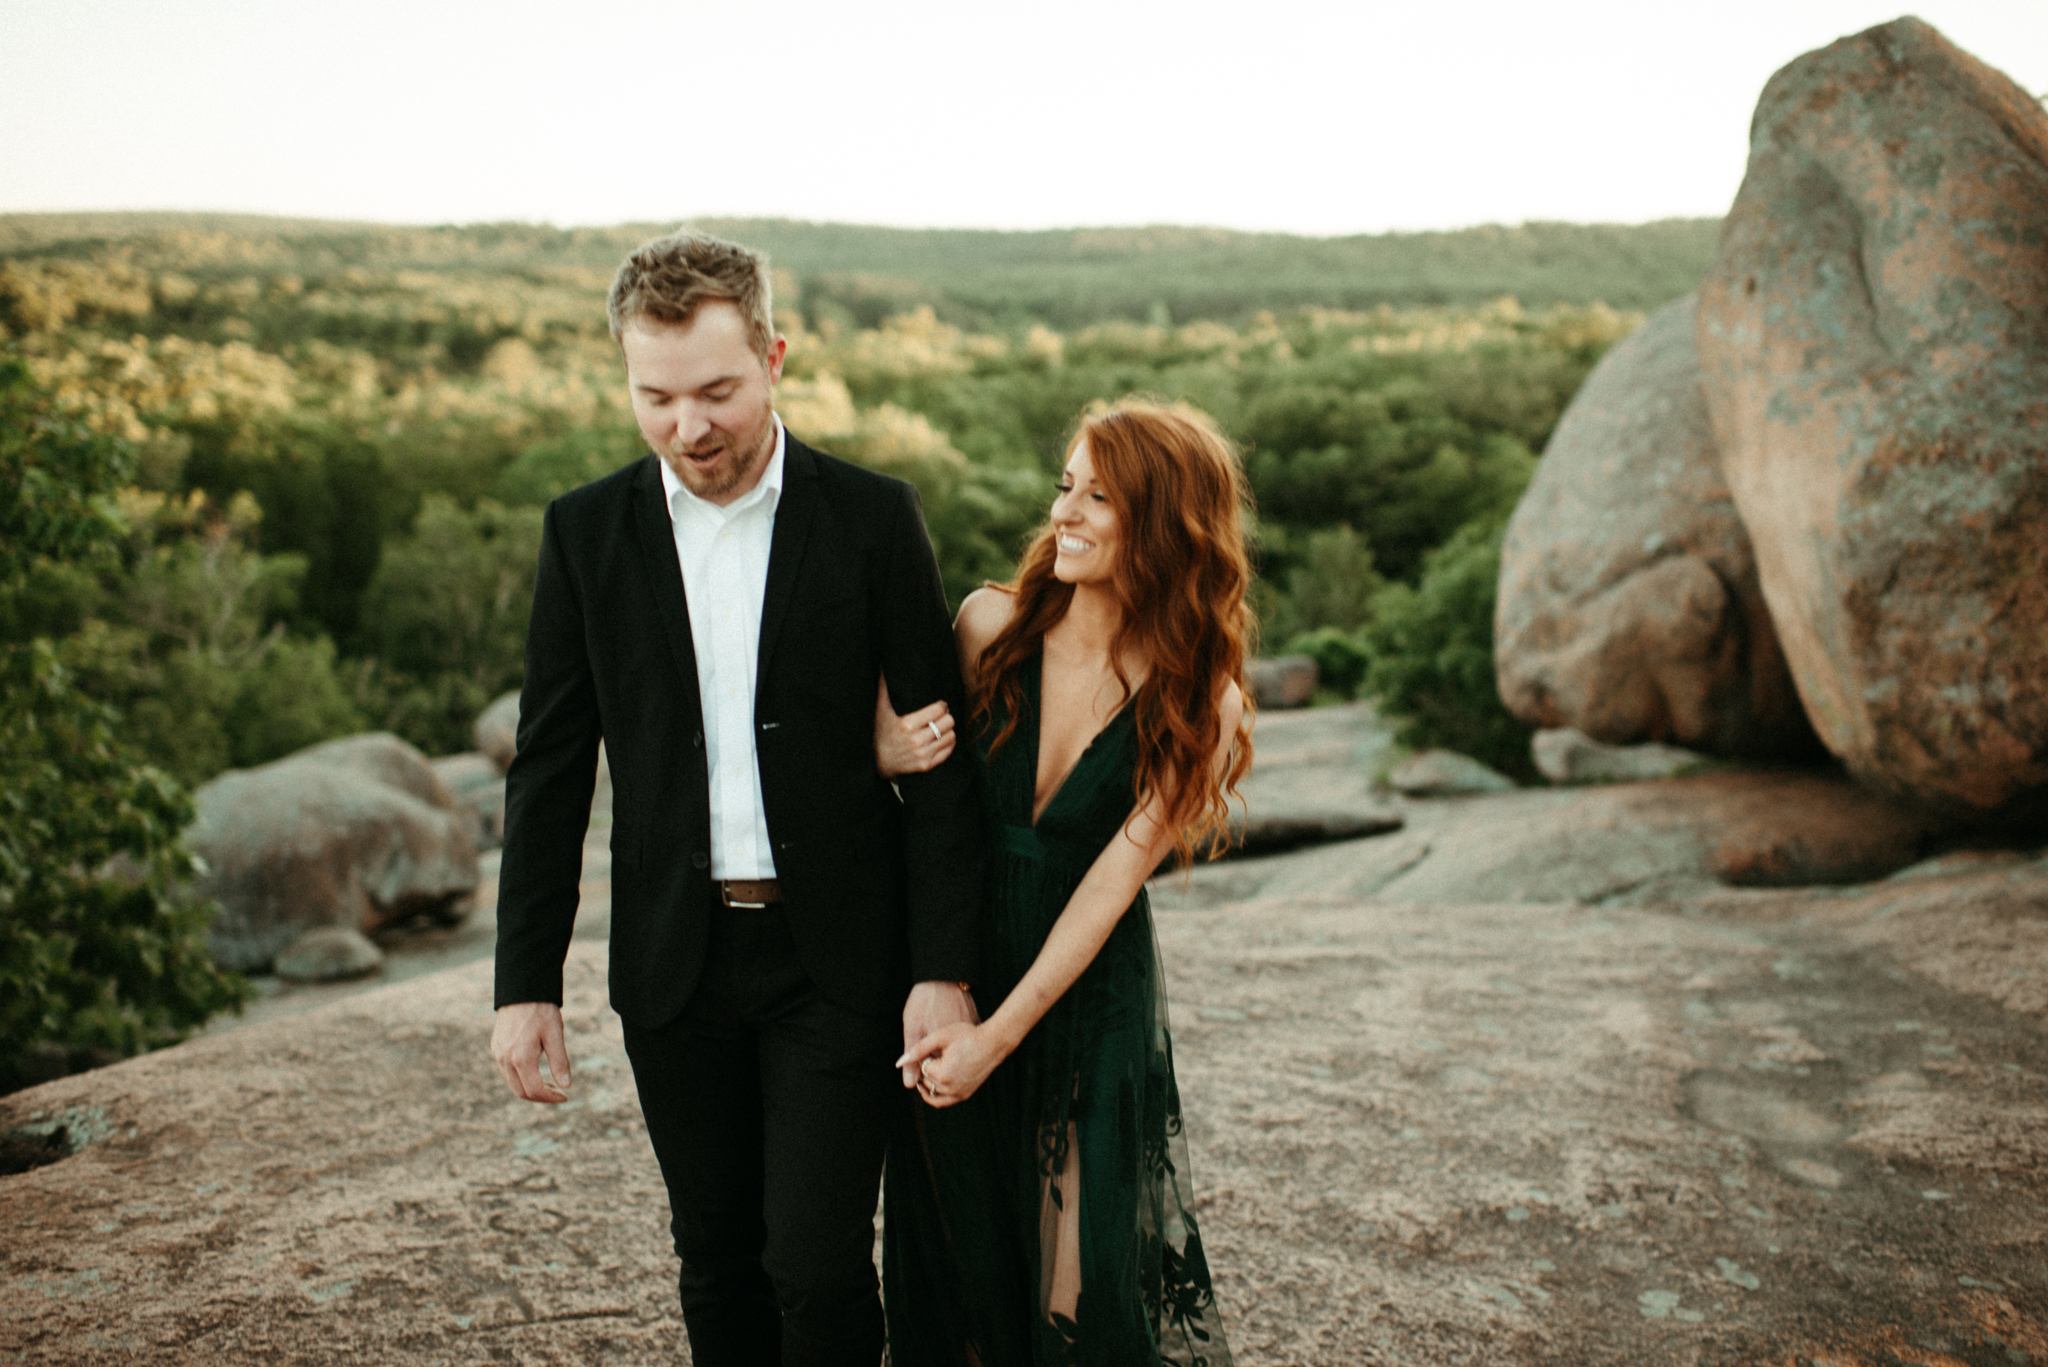 Zach and Rosalie - Missouri Wedding Photographer - Elephant rocks state park anniversary session -7172.jpg